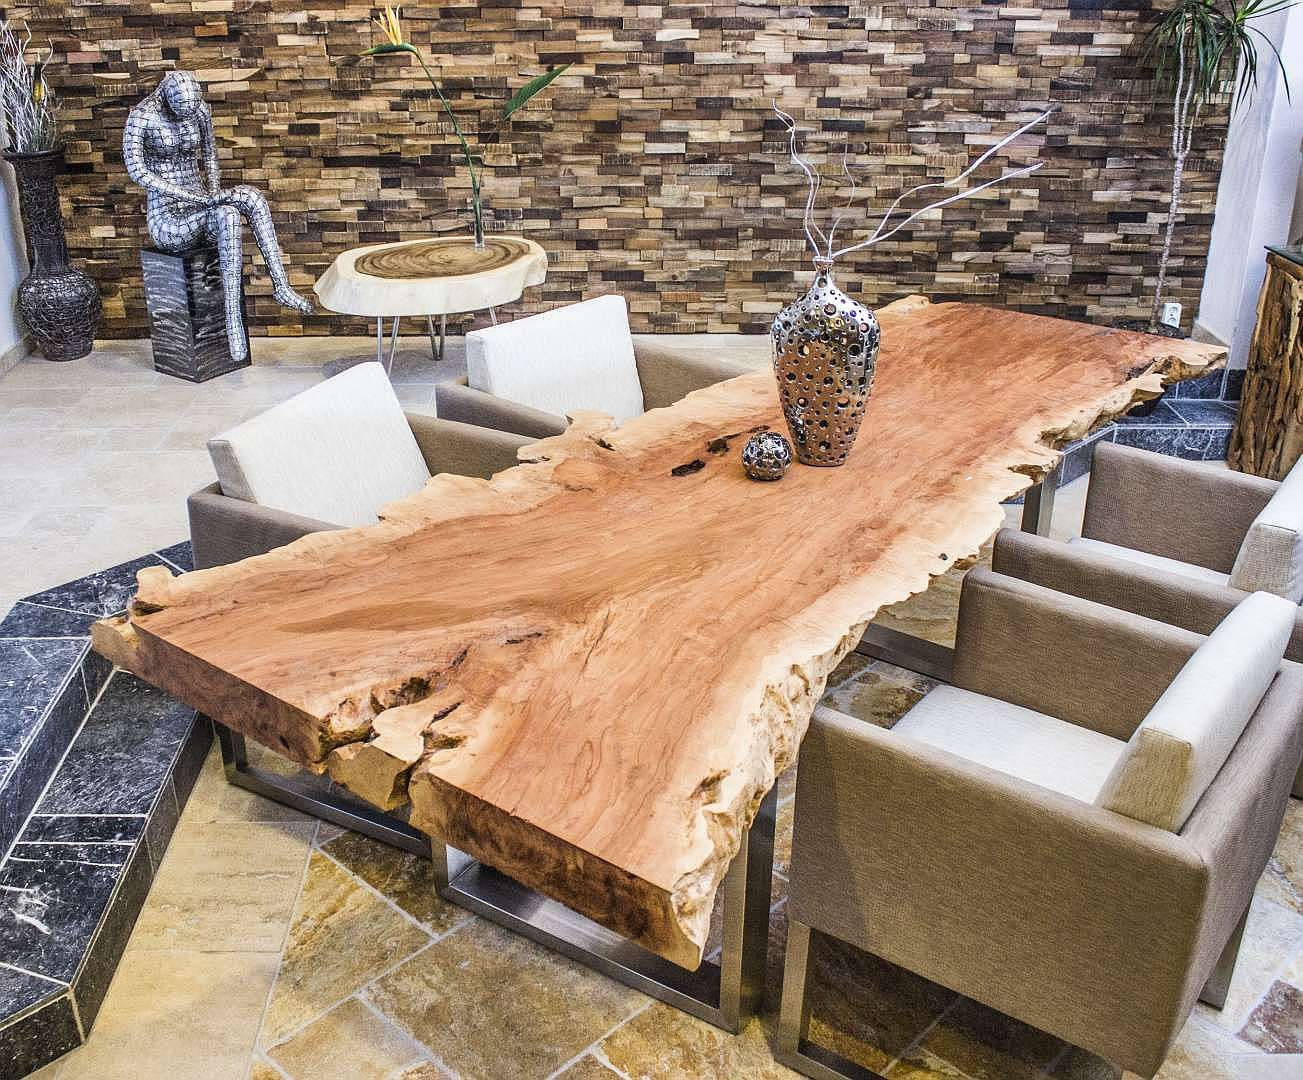 Lychee wood design table | Holzdesign, Tischdesign, Altholz